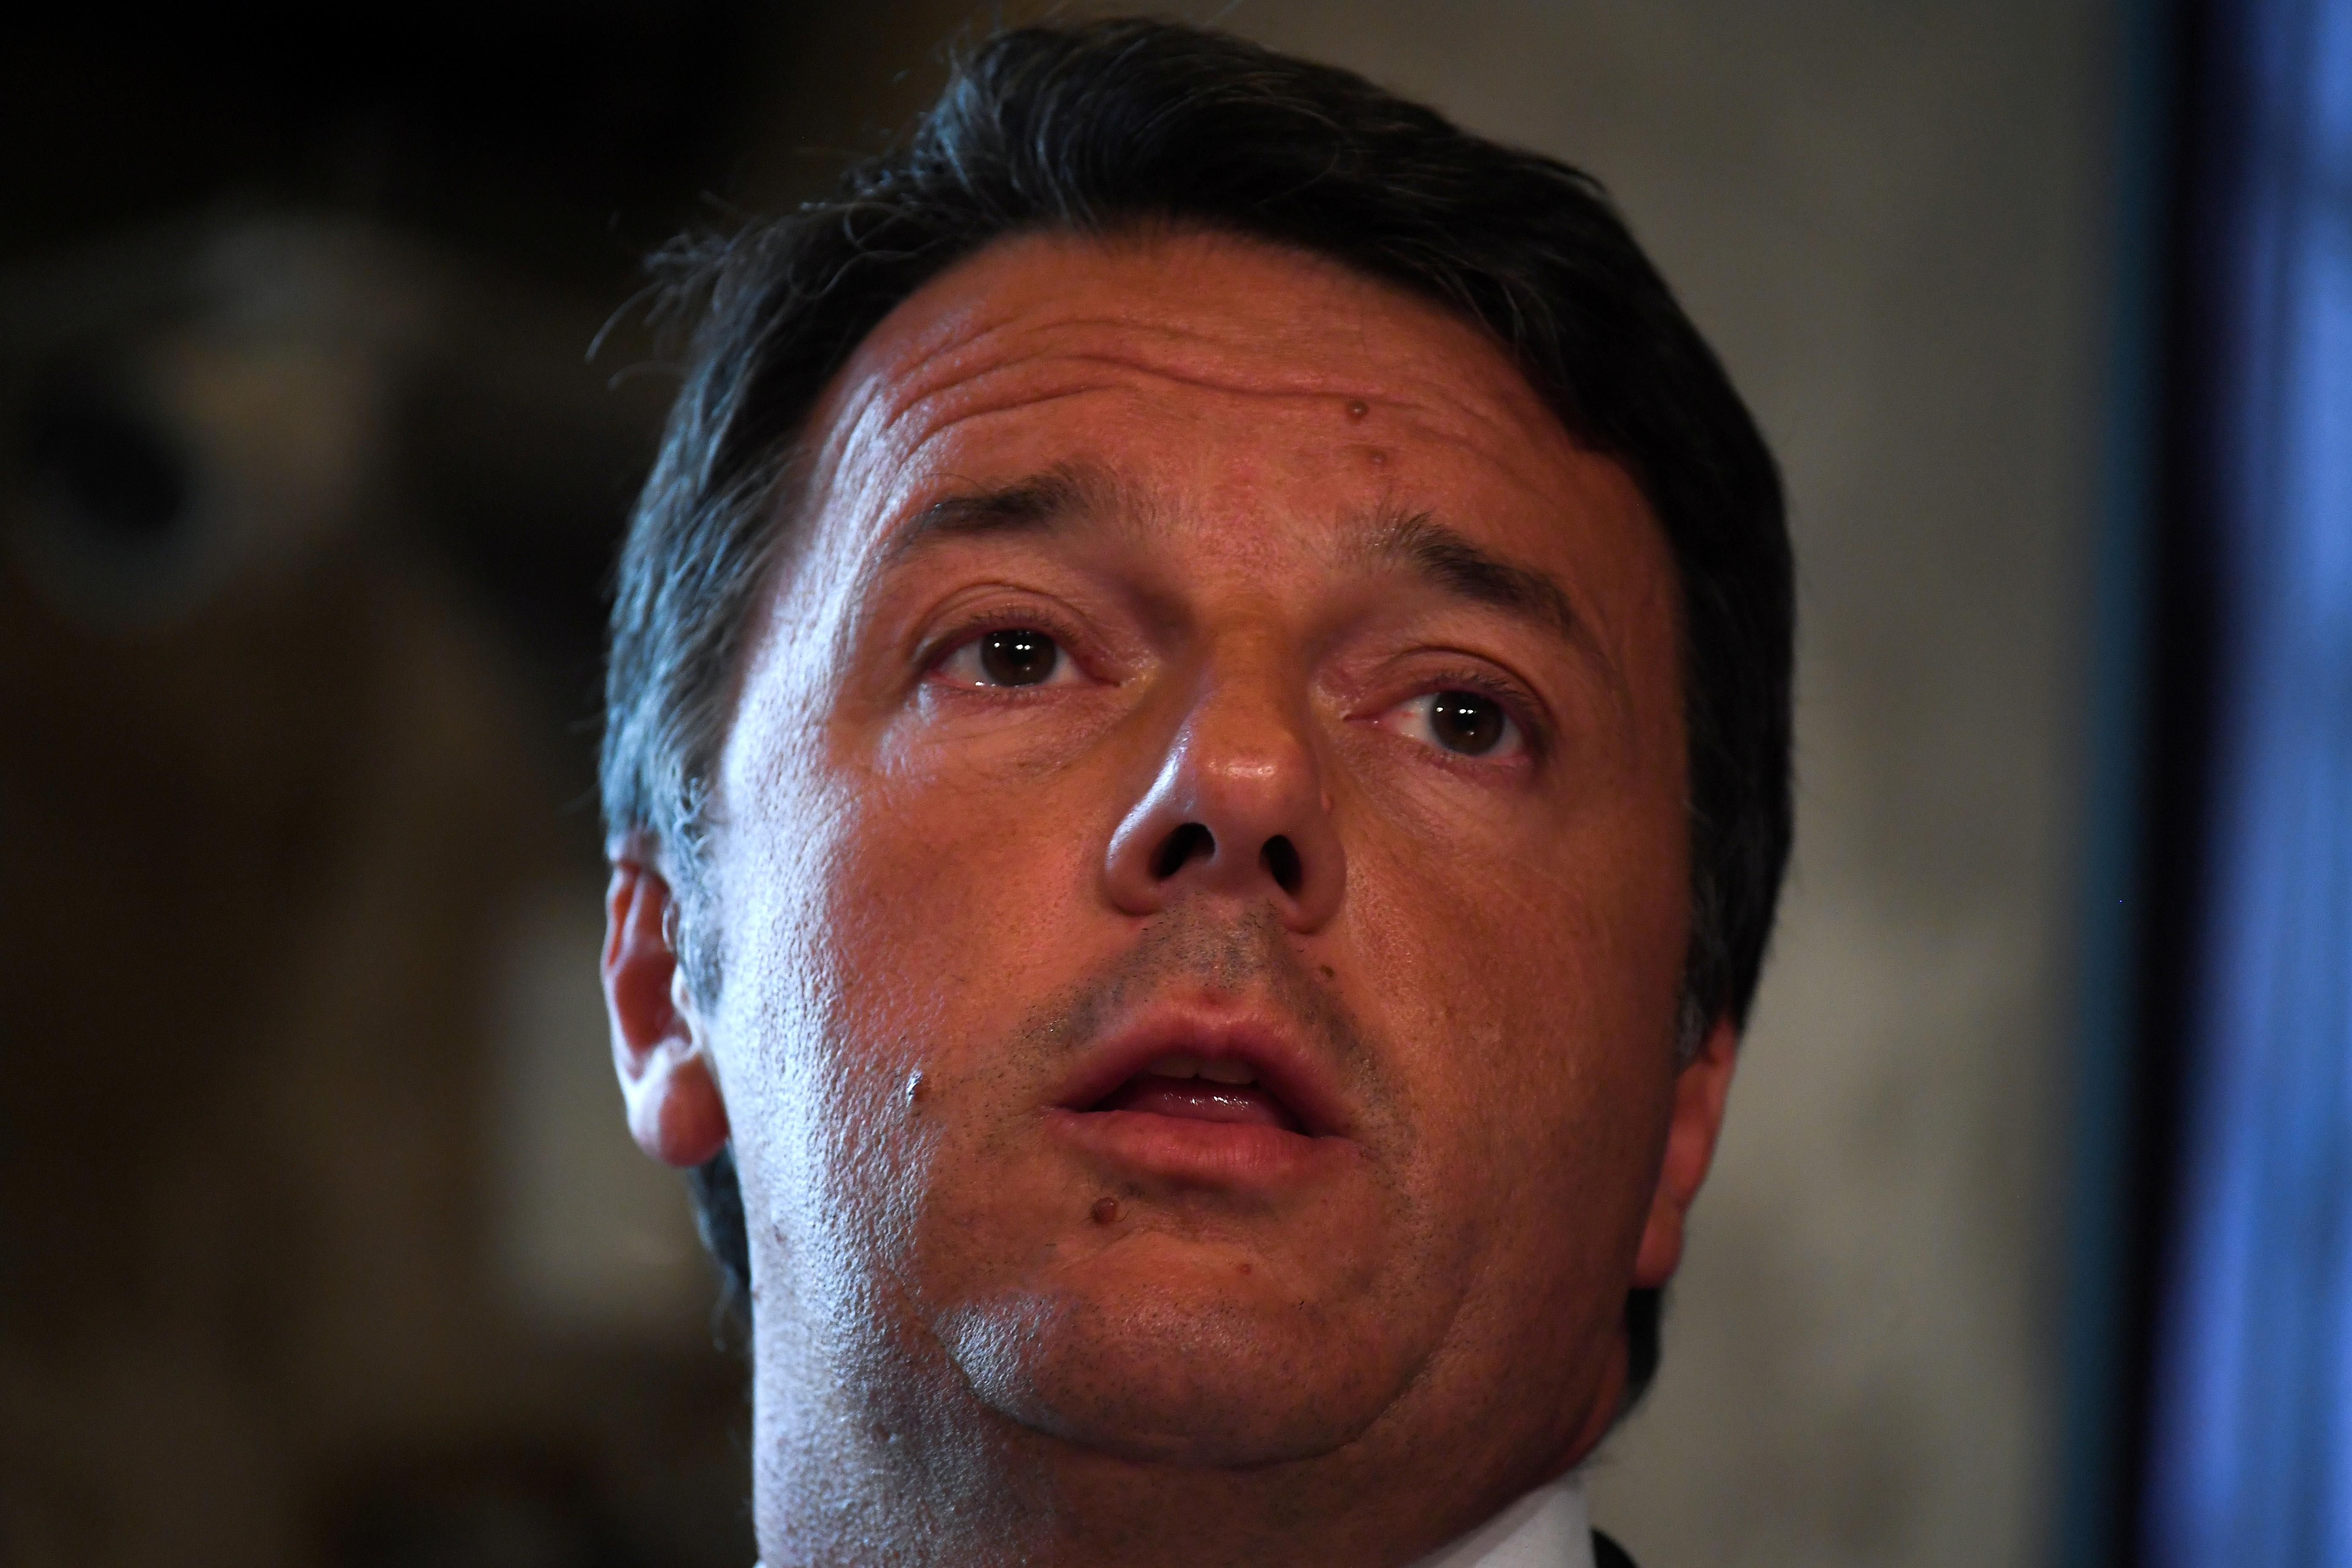 Italy's Renzi ready to form breakaway party, complicating new government